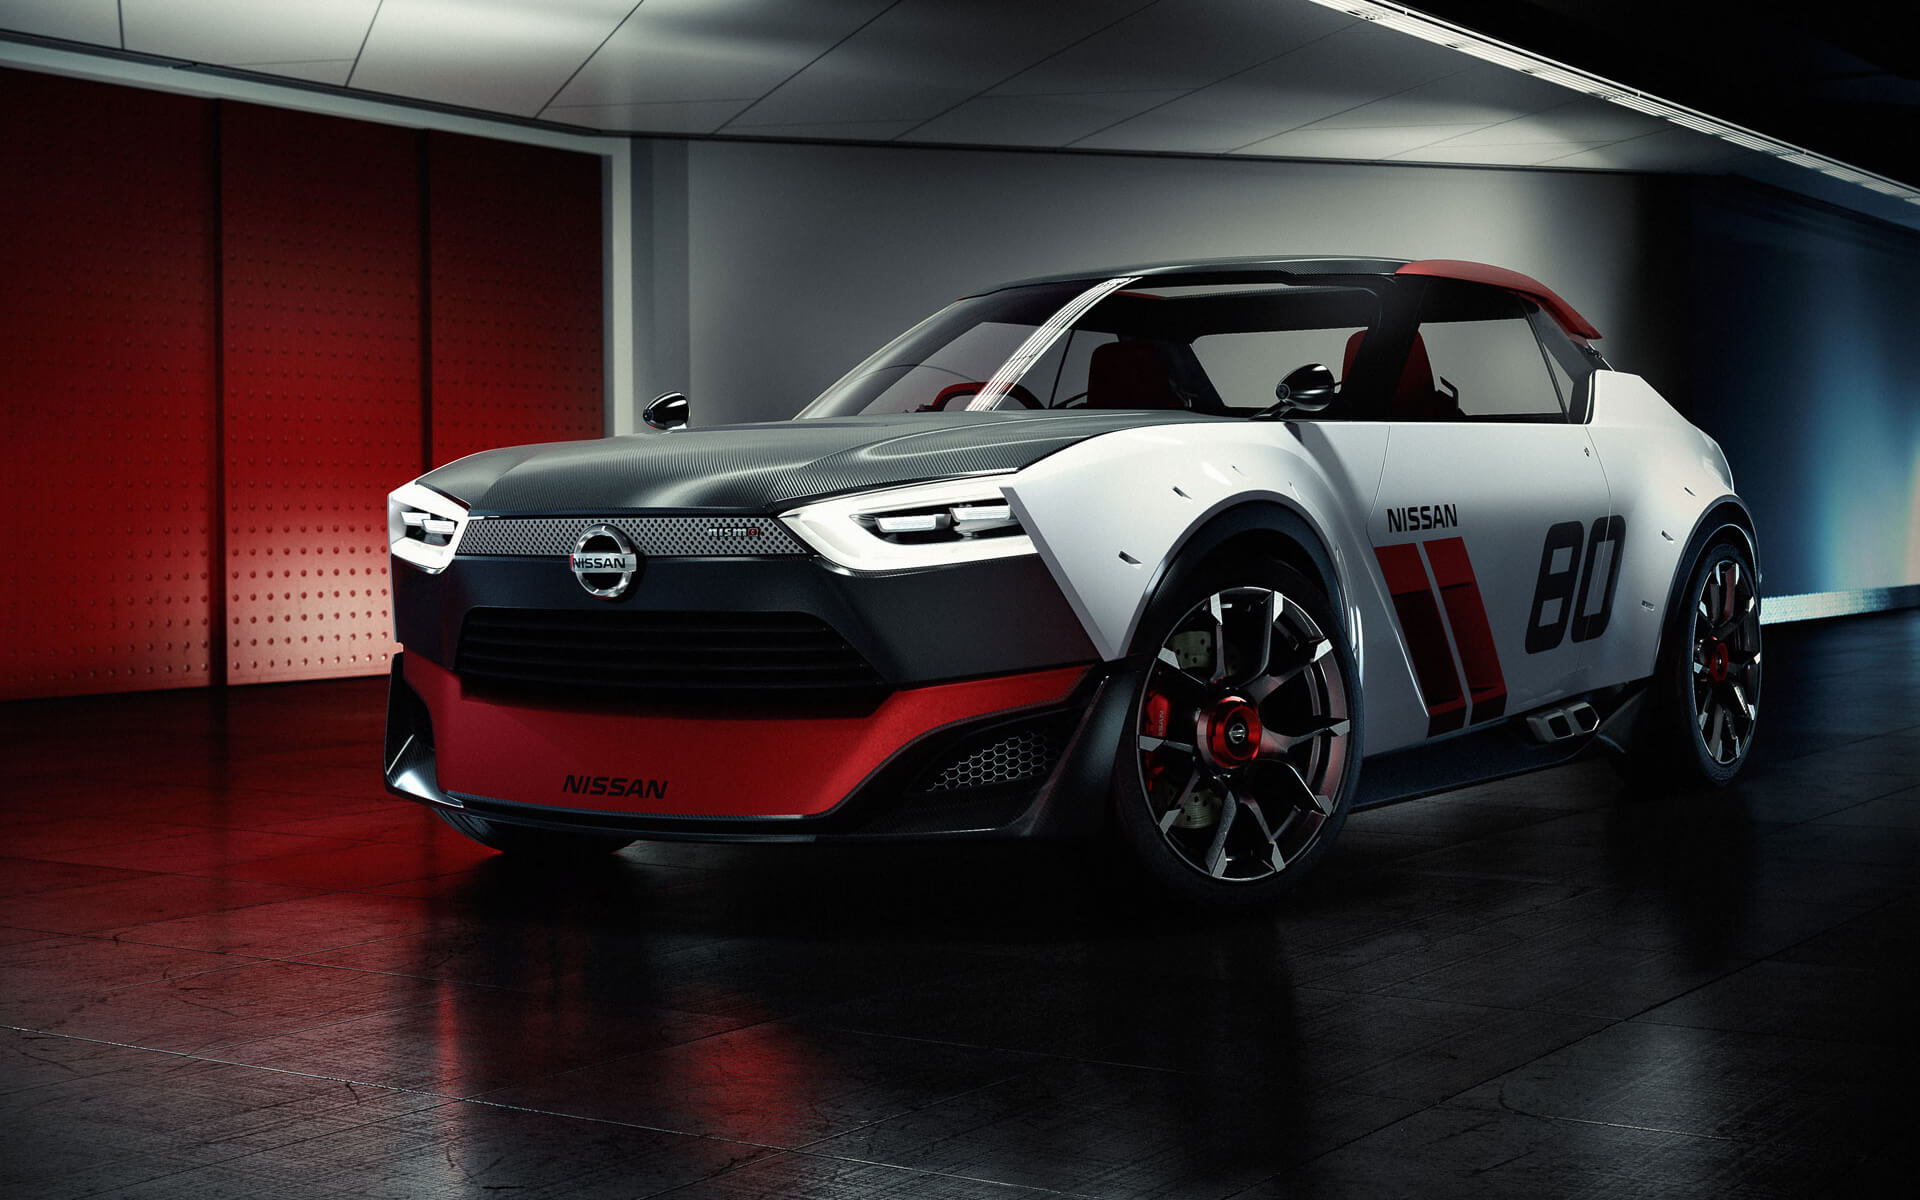 nissan idx wallpaper background, wallpapers